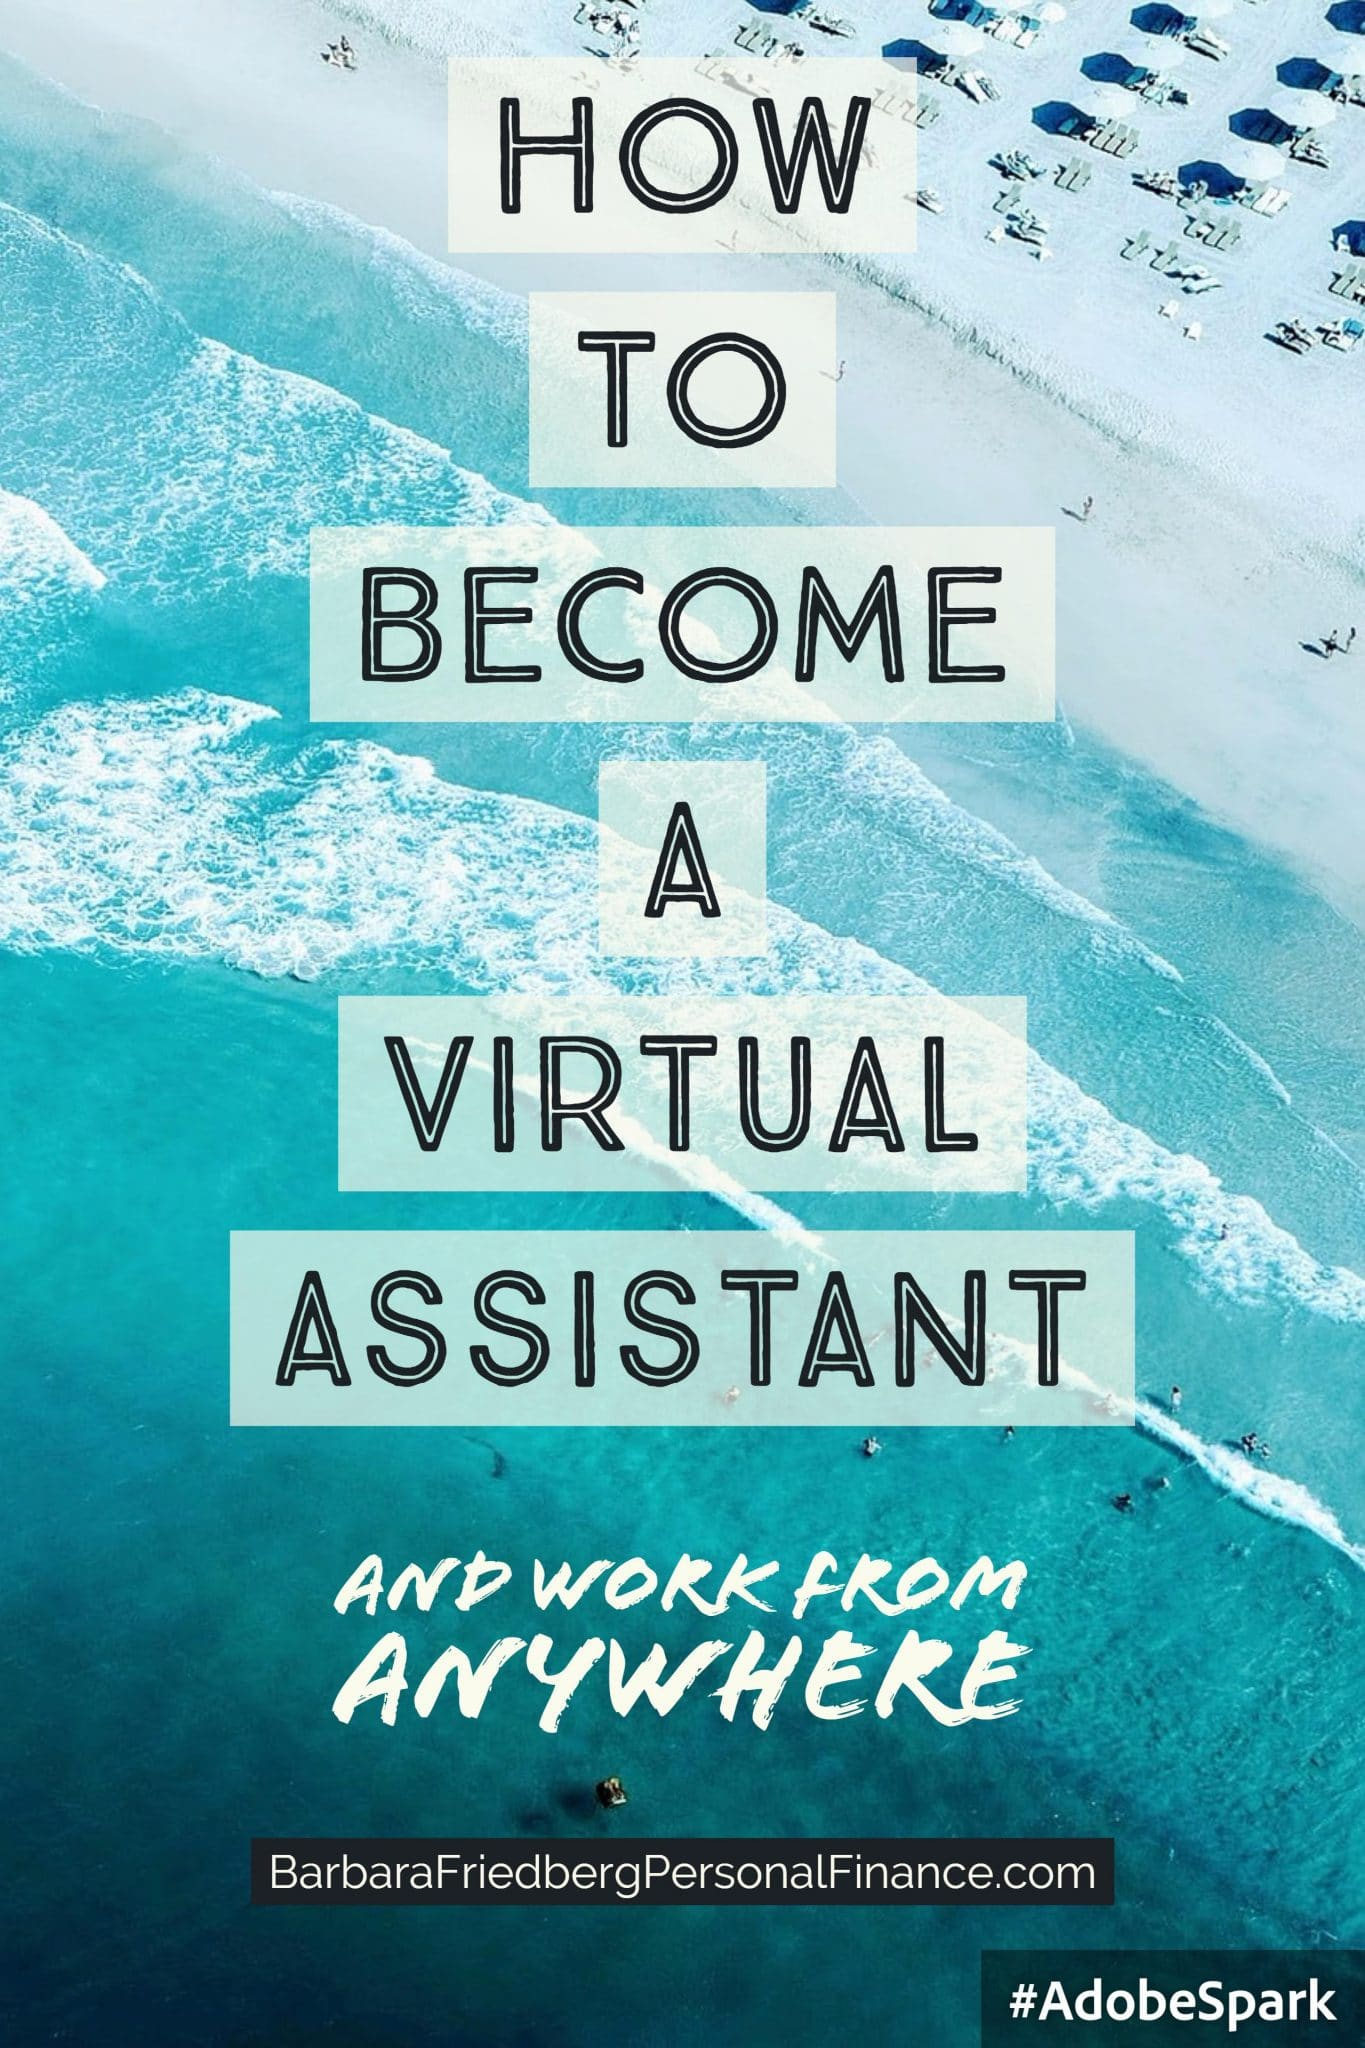 Virtual Assistant Job Description - Learn how to become a VA